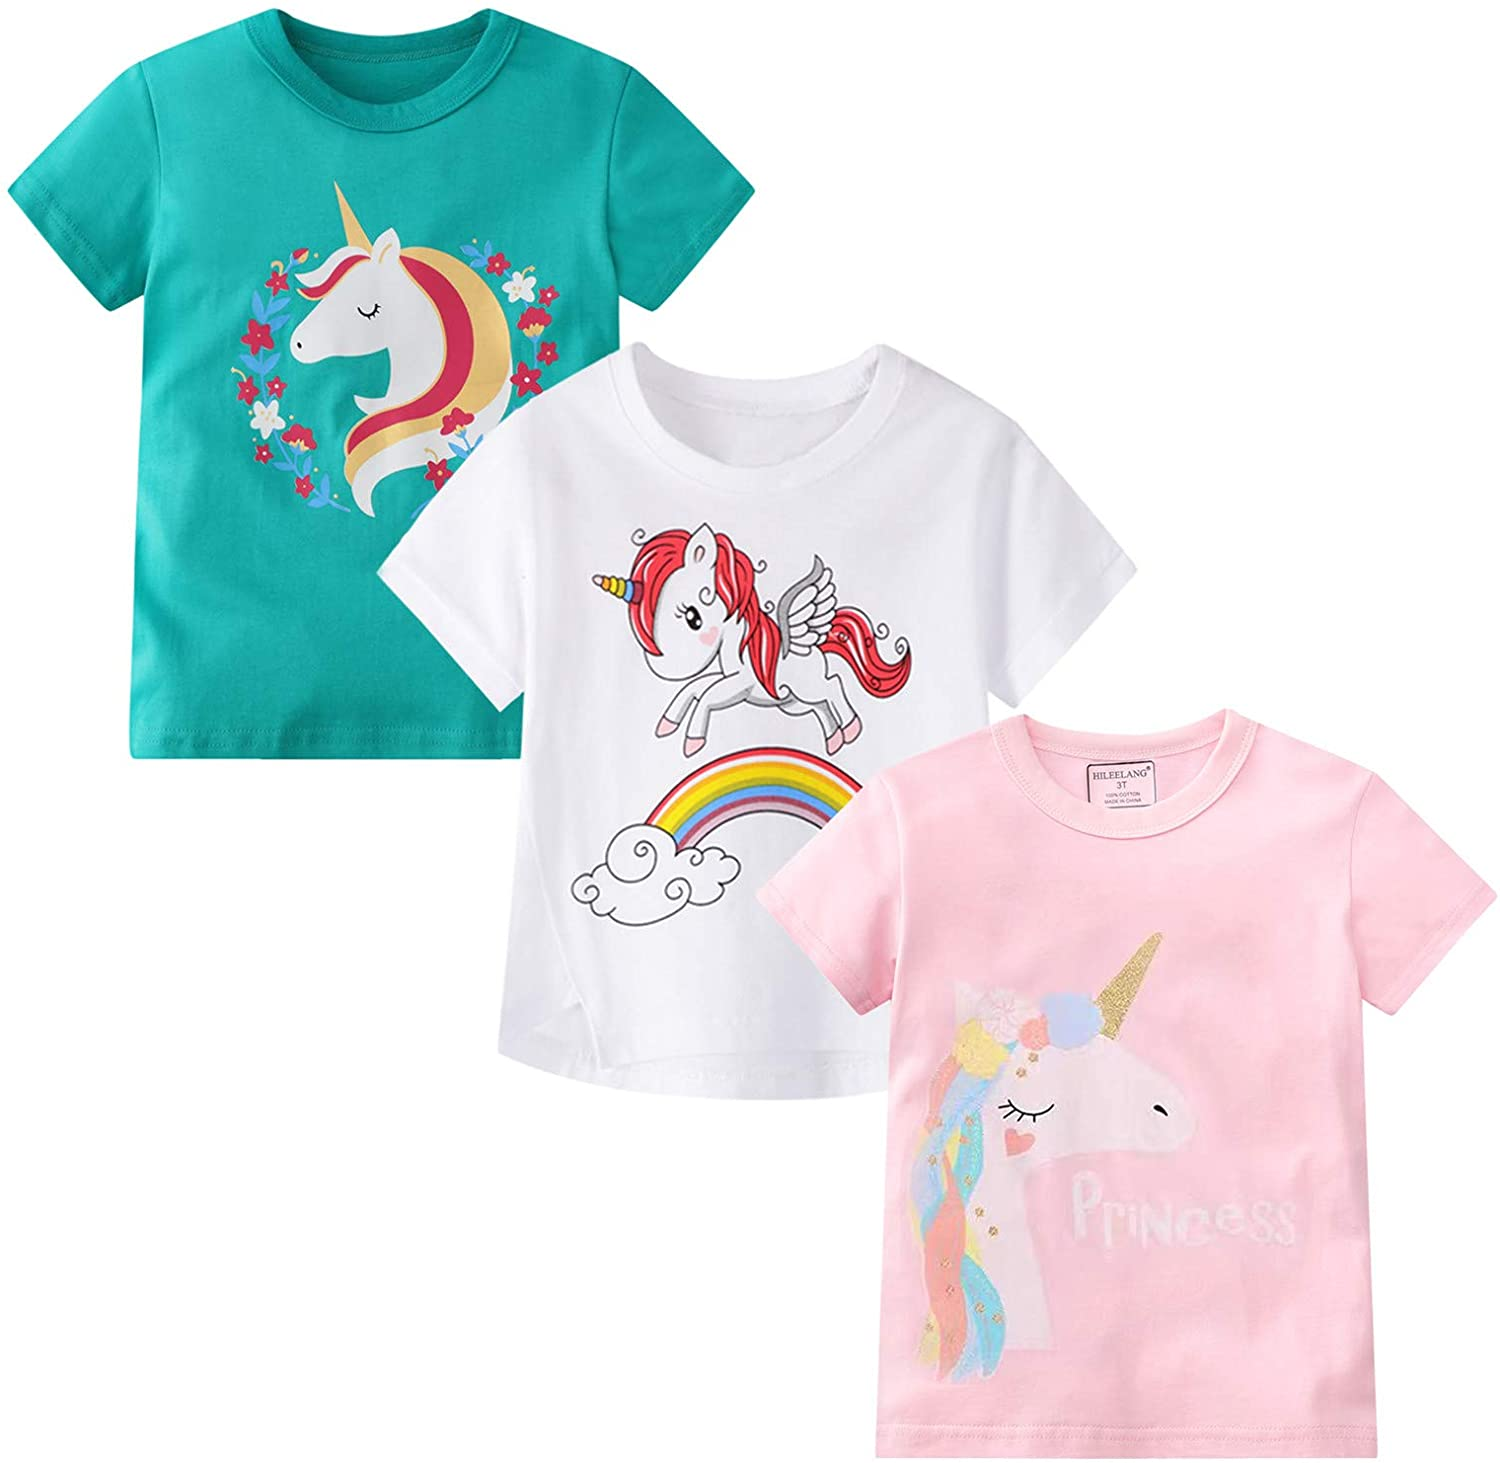 Opening large release sale Toddler Girl Tees Short Sleeve T Shirt Unicorn Cr Summer Graphic Max 76% OFF